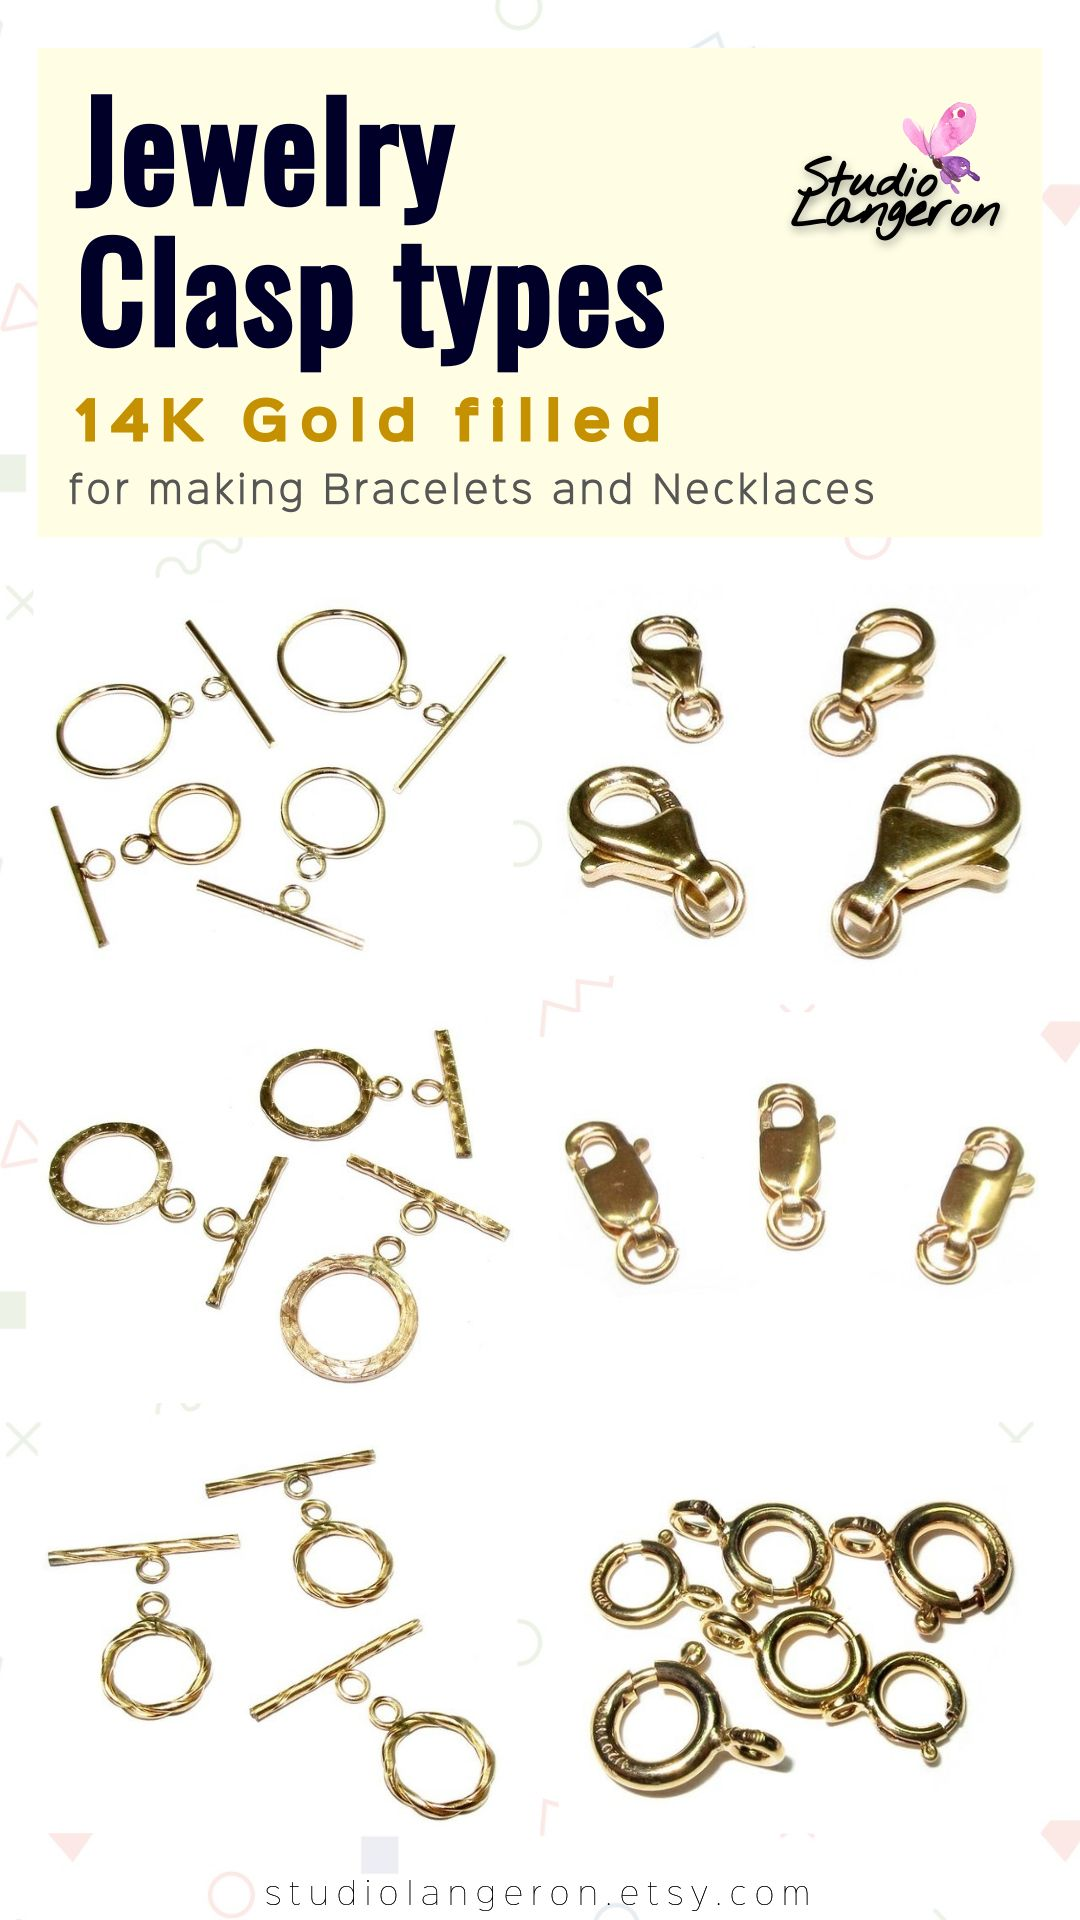 12+ Where can i buy jewelry making supplies viral